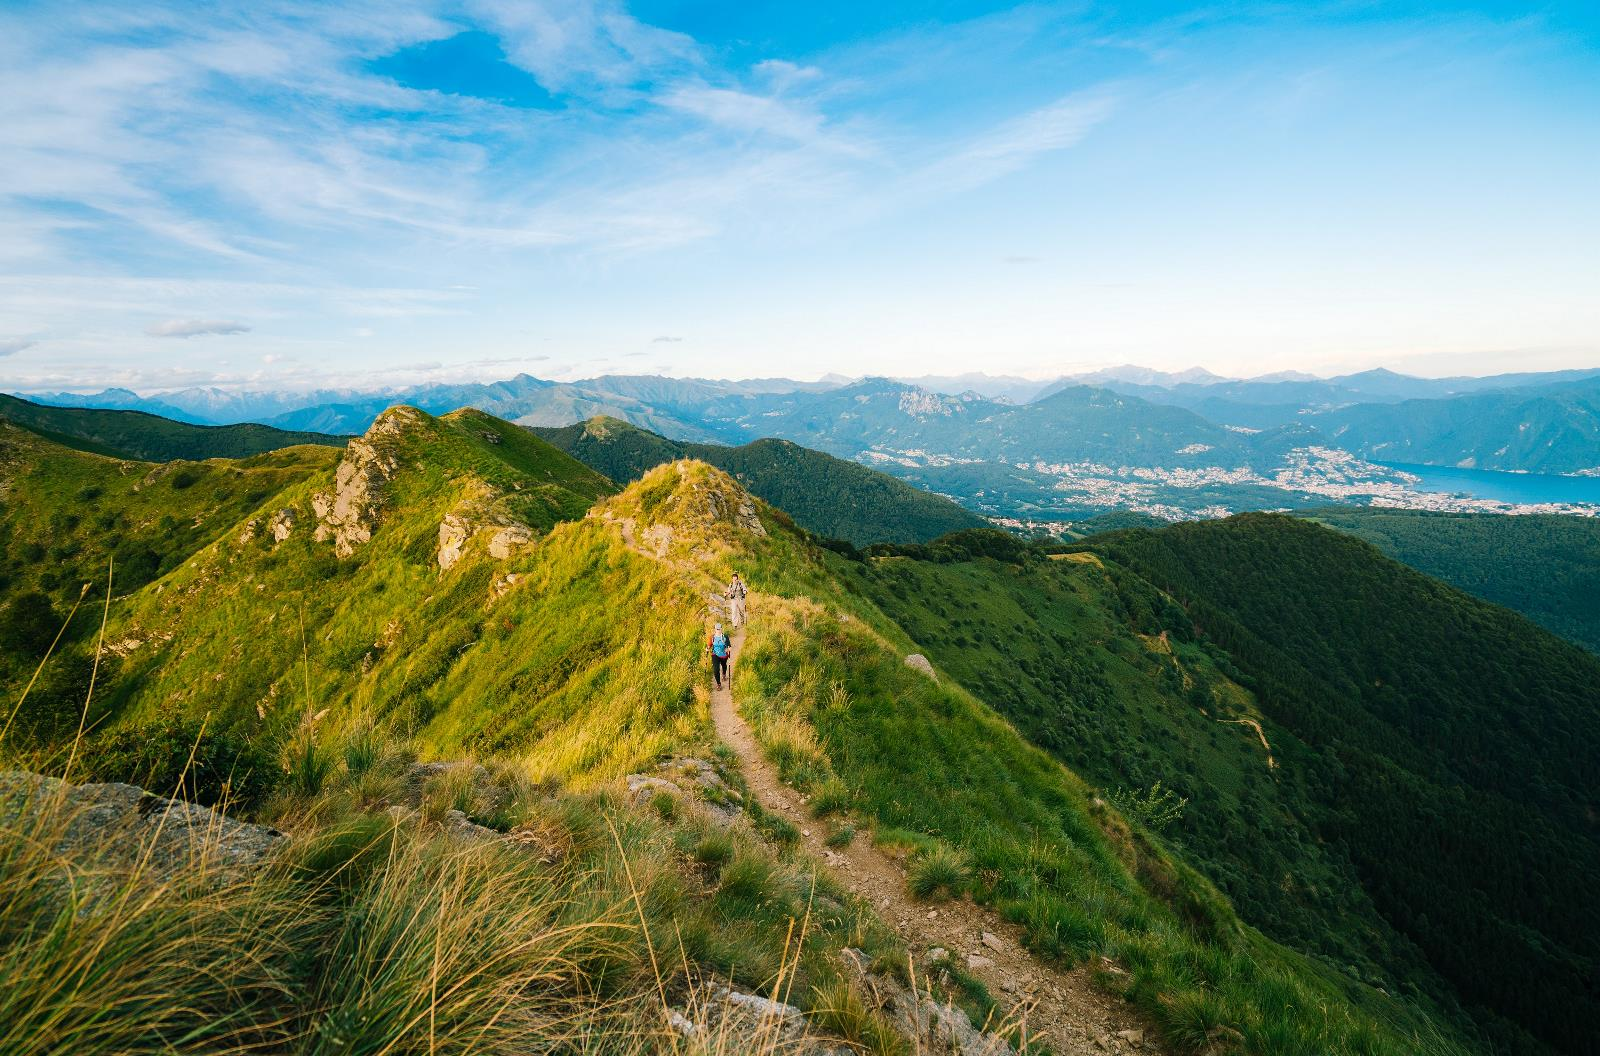 The Monte Tamaro - Monte Lema Hike